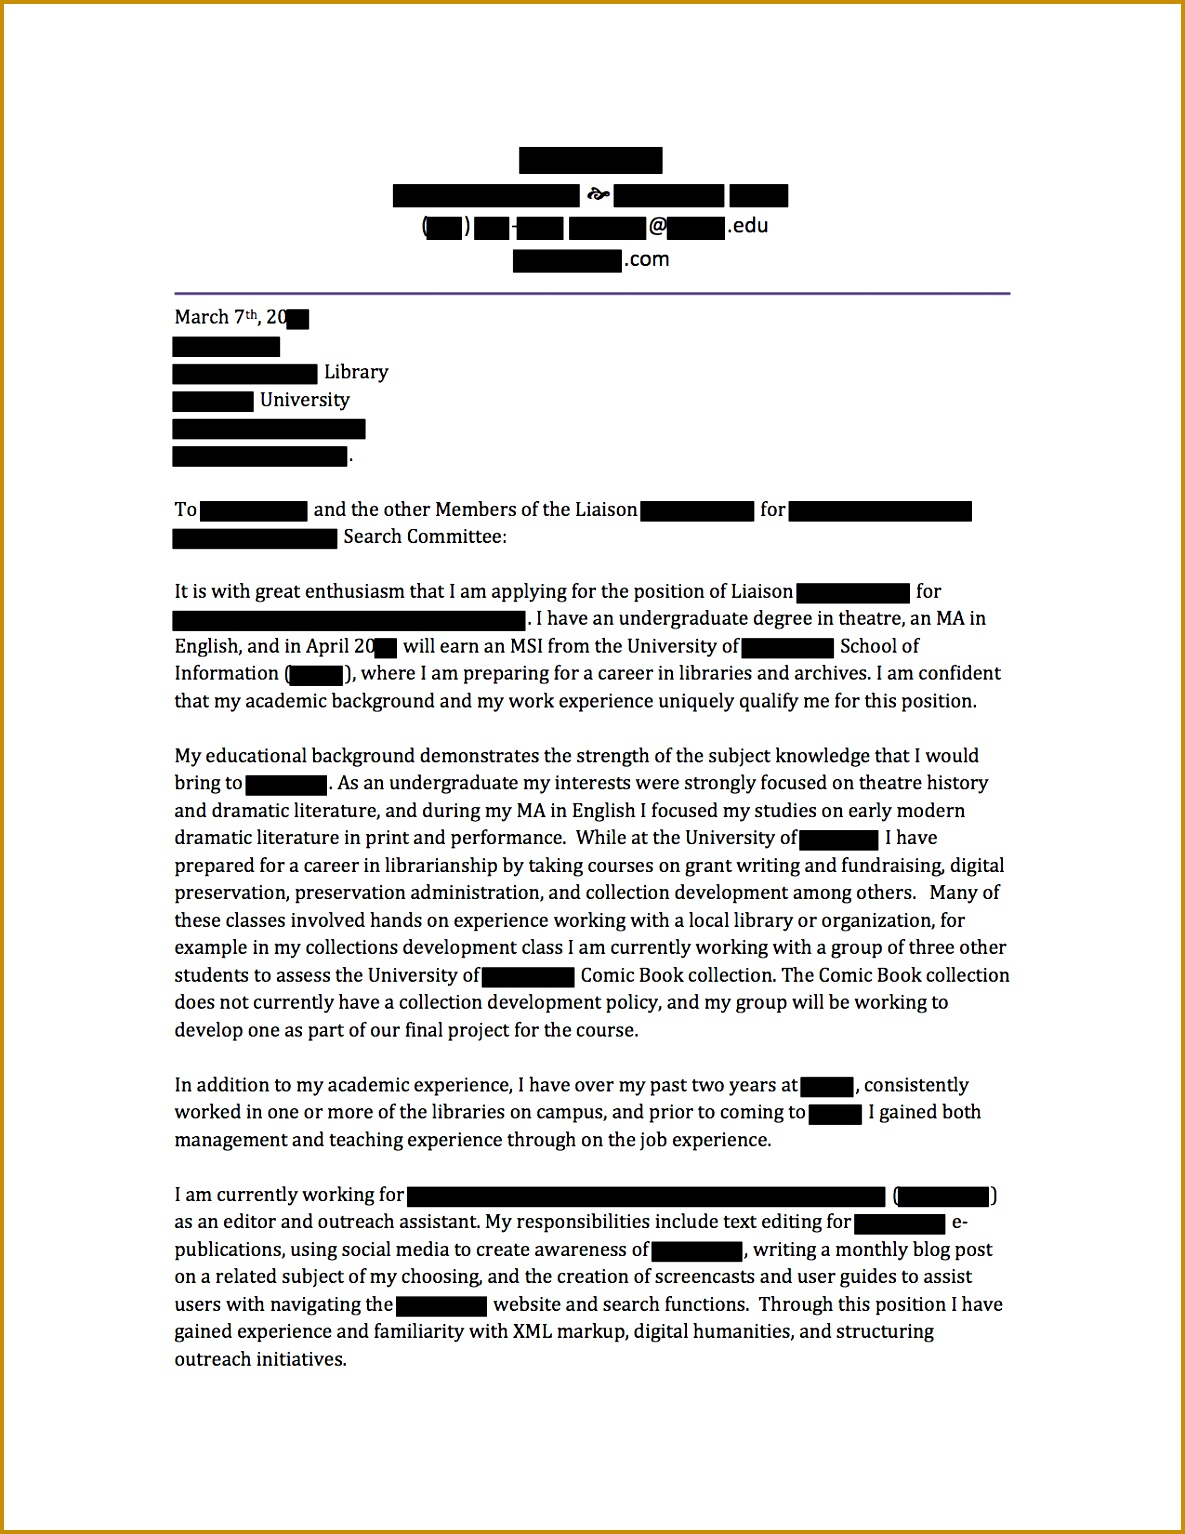 How to Write A Cover Letter Examples Fresh Cover Letter Examples for Internship Beautiful Job Letter 11851534